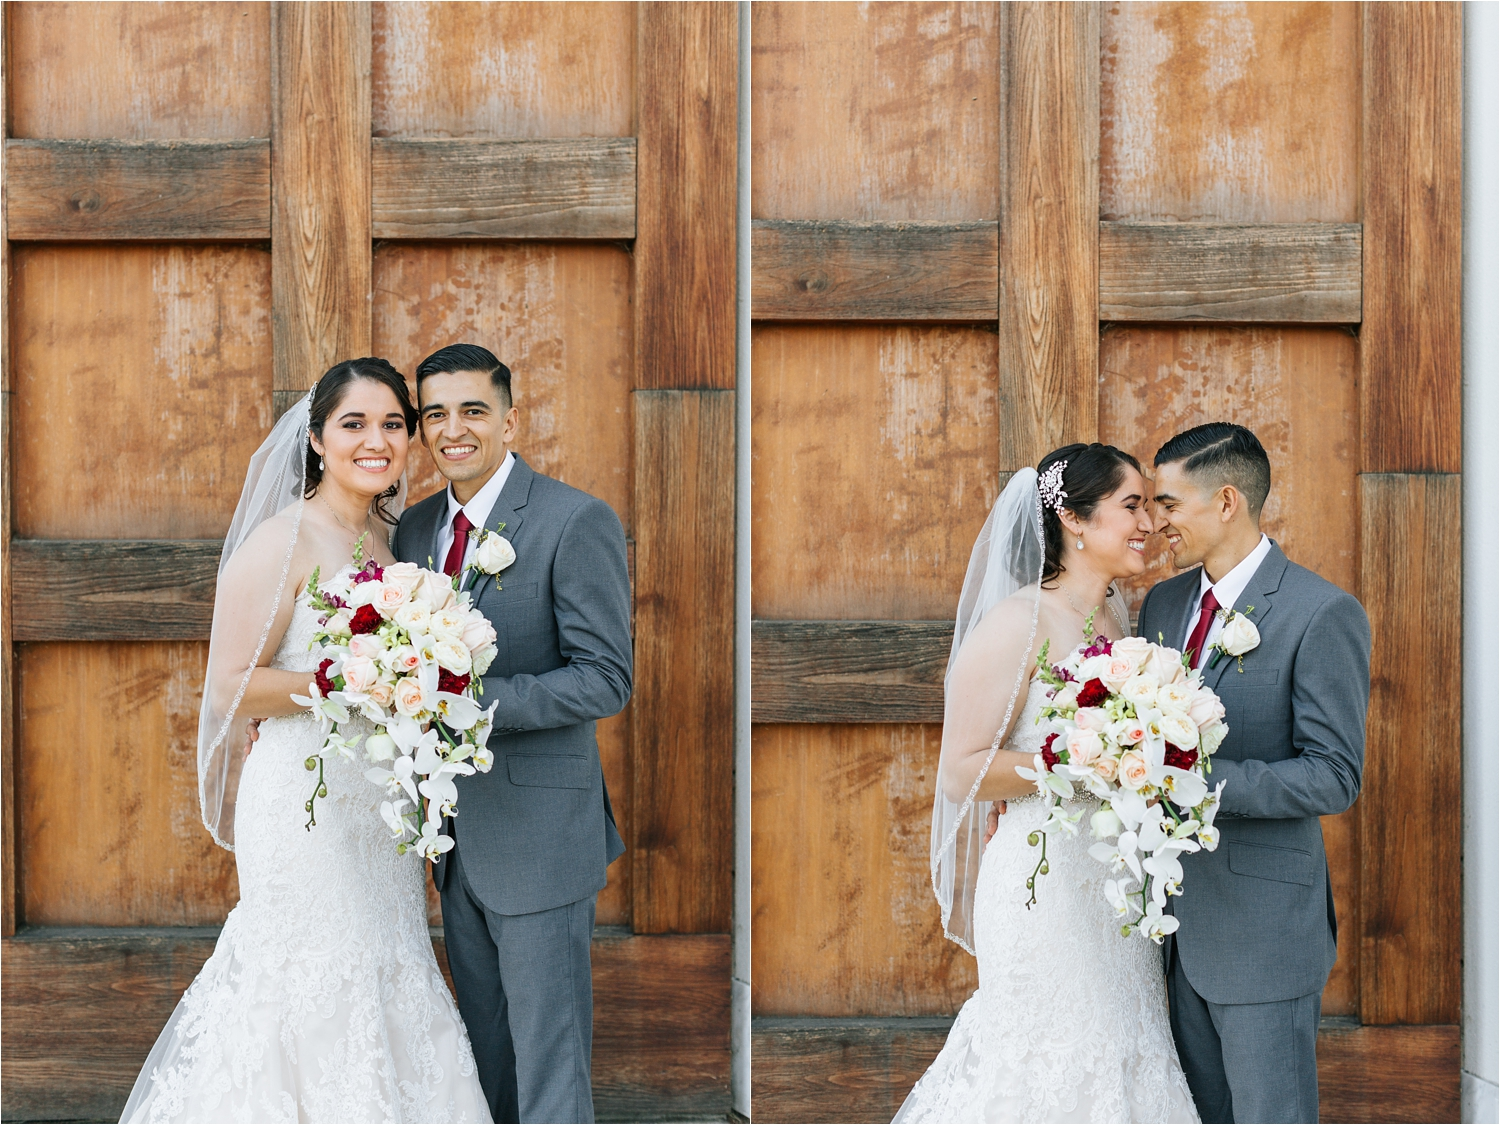 Bride and Groom Photos at Chaffey College - https://brittneyhannonphotography.com